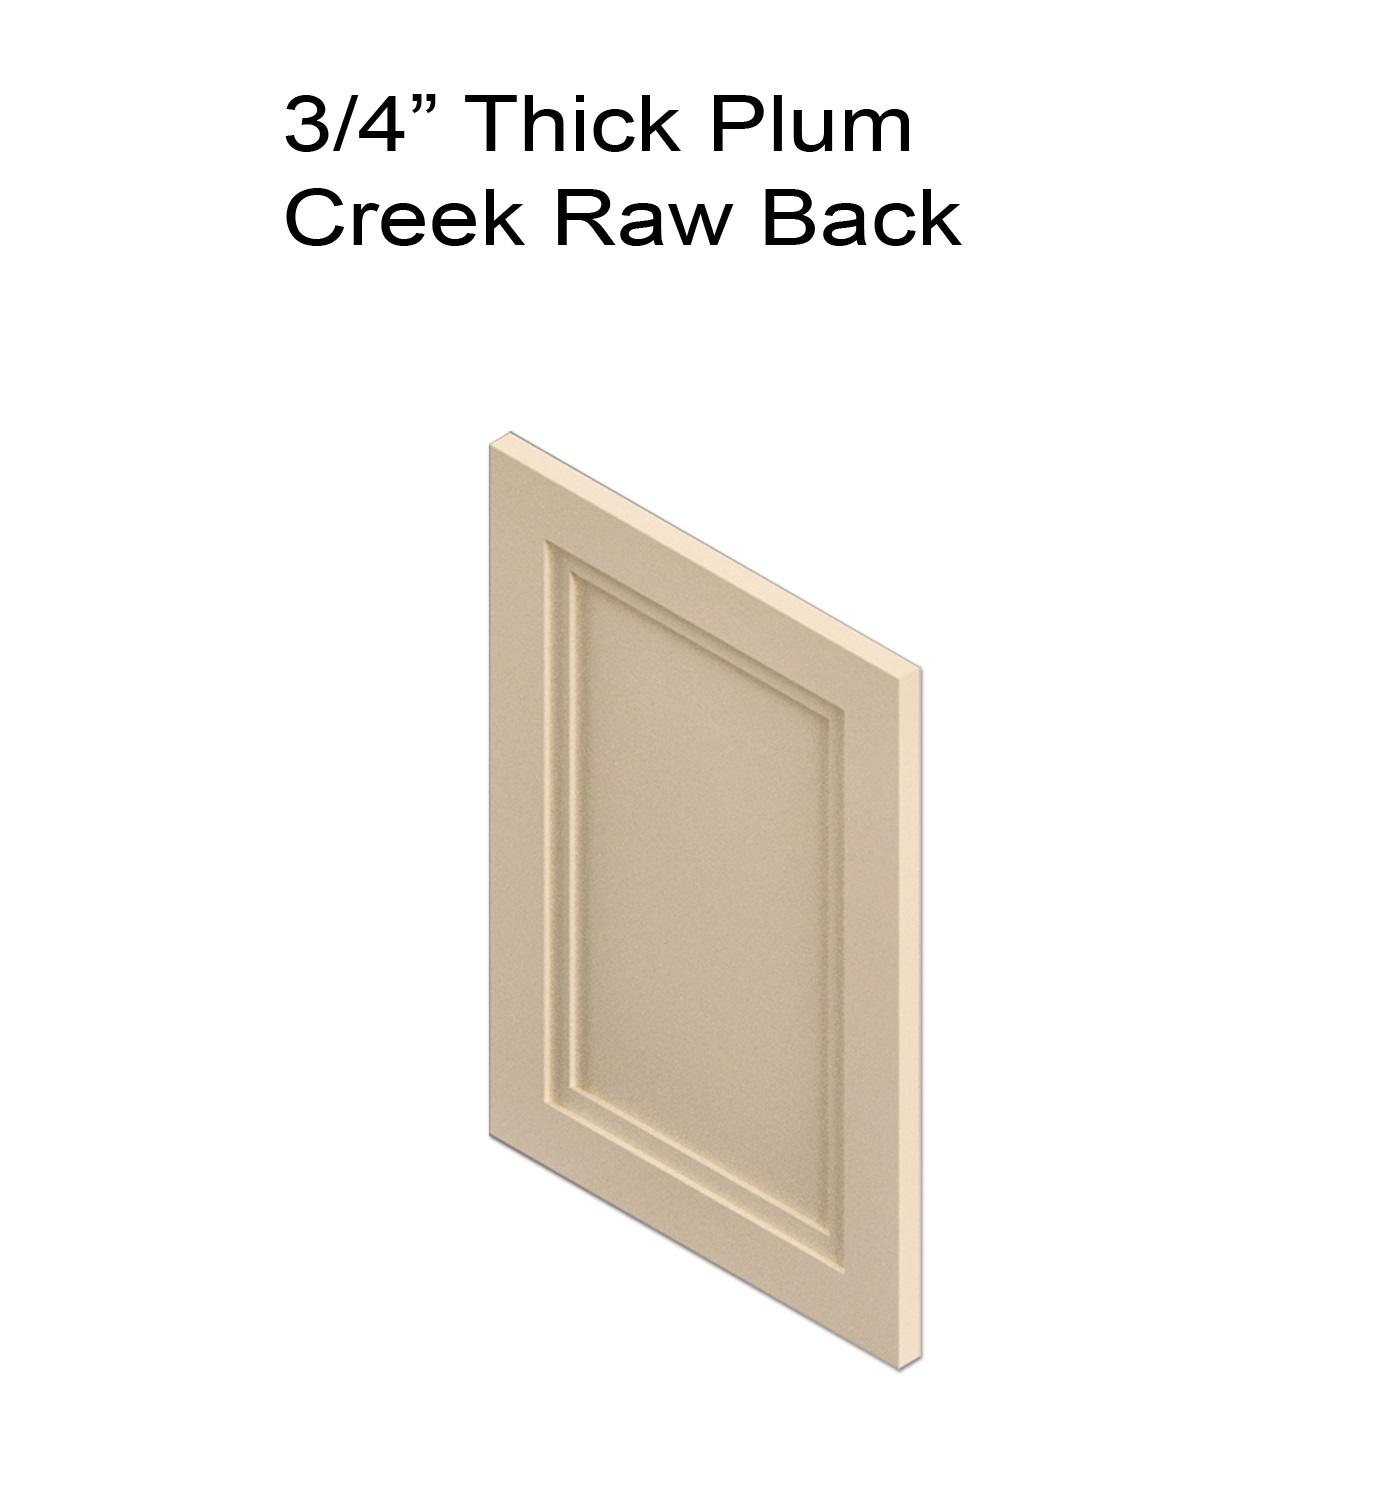 Thick Plum Creek Raw Back